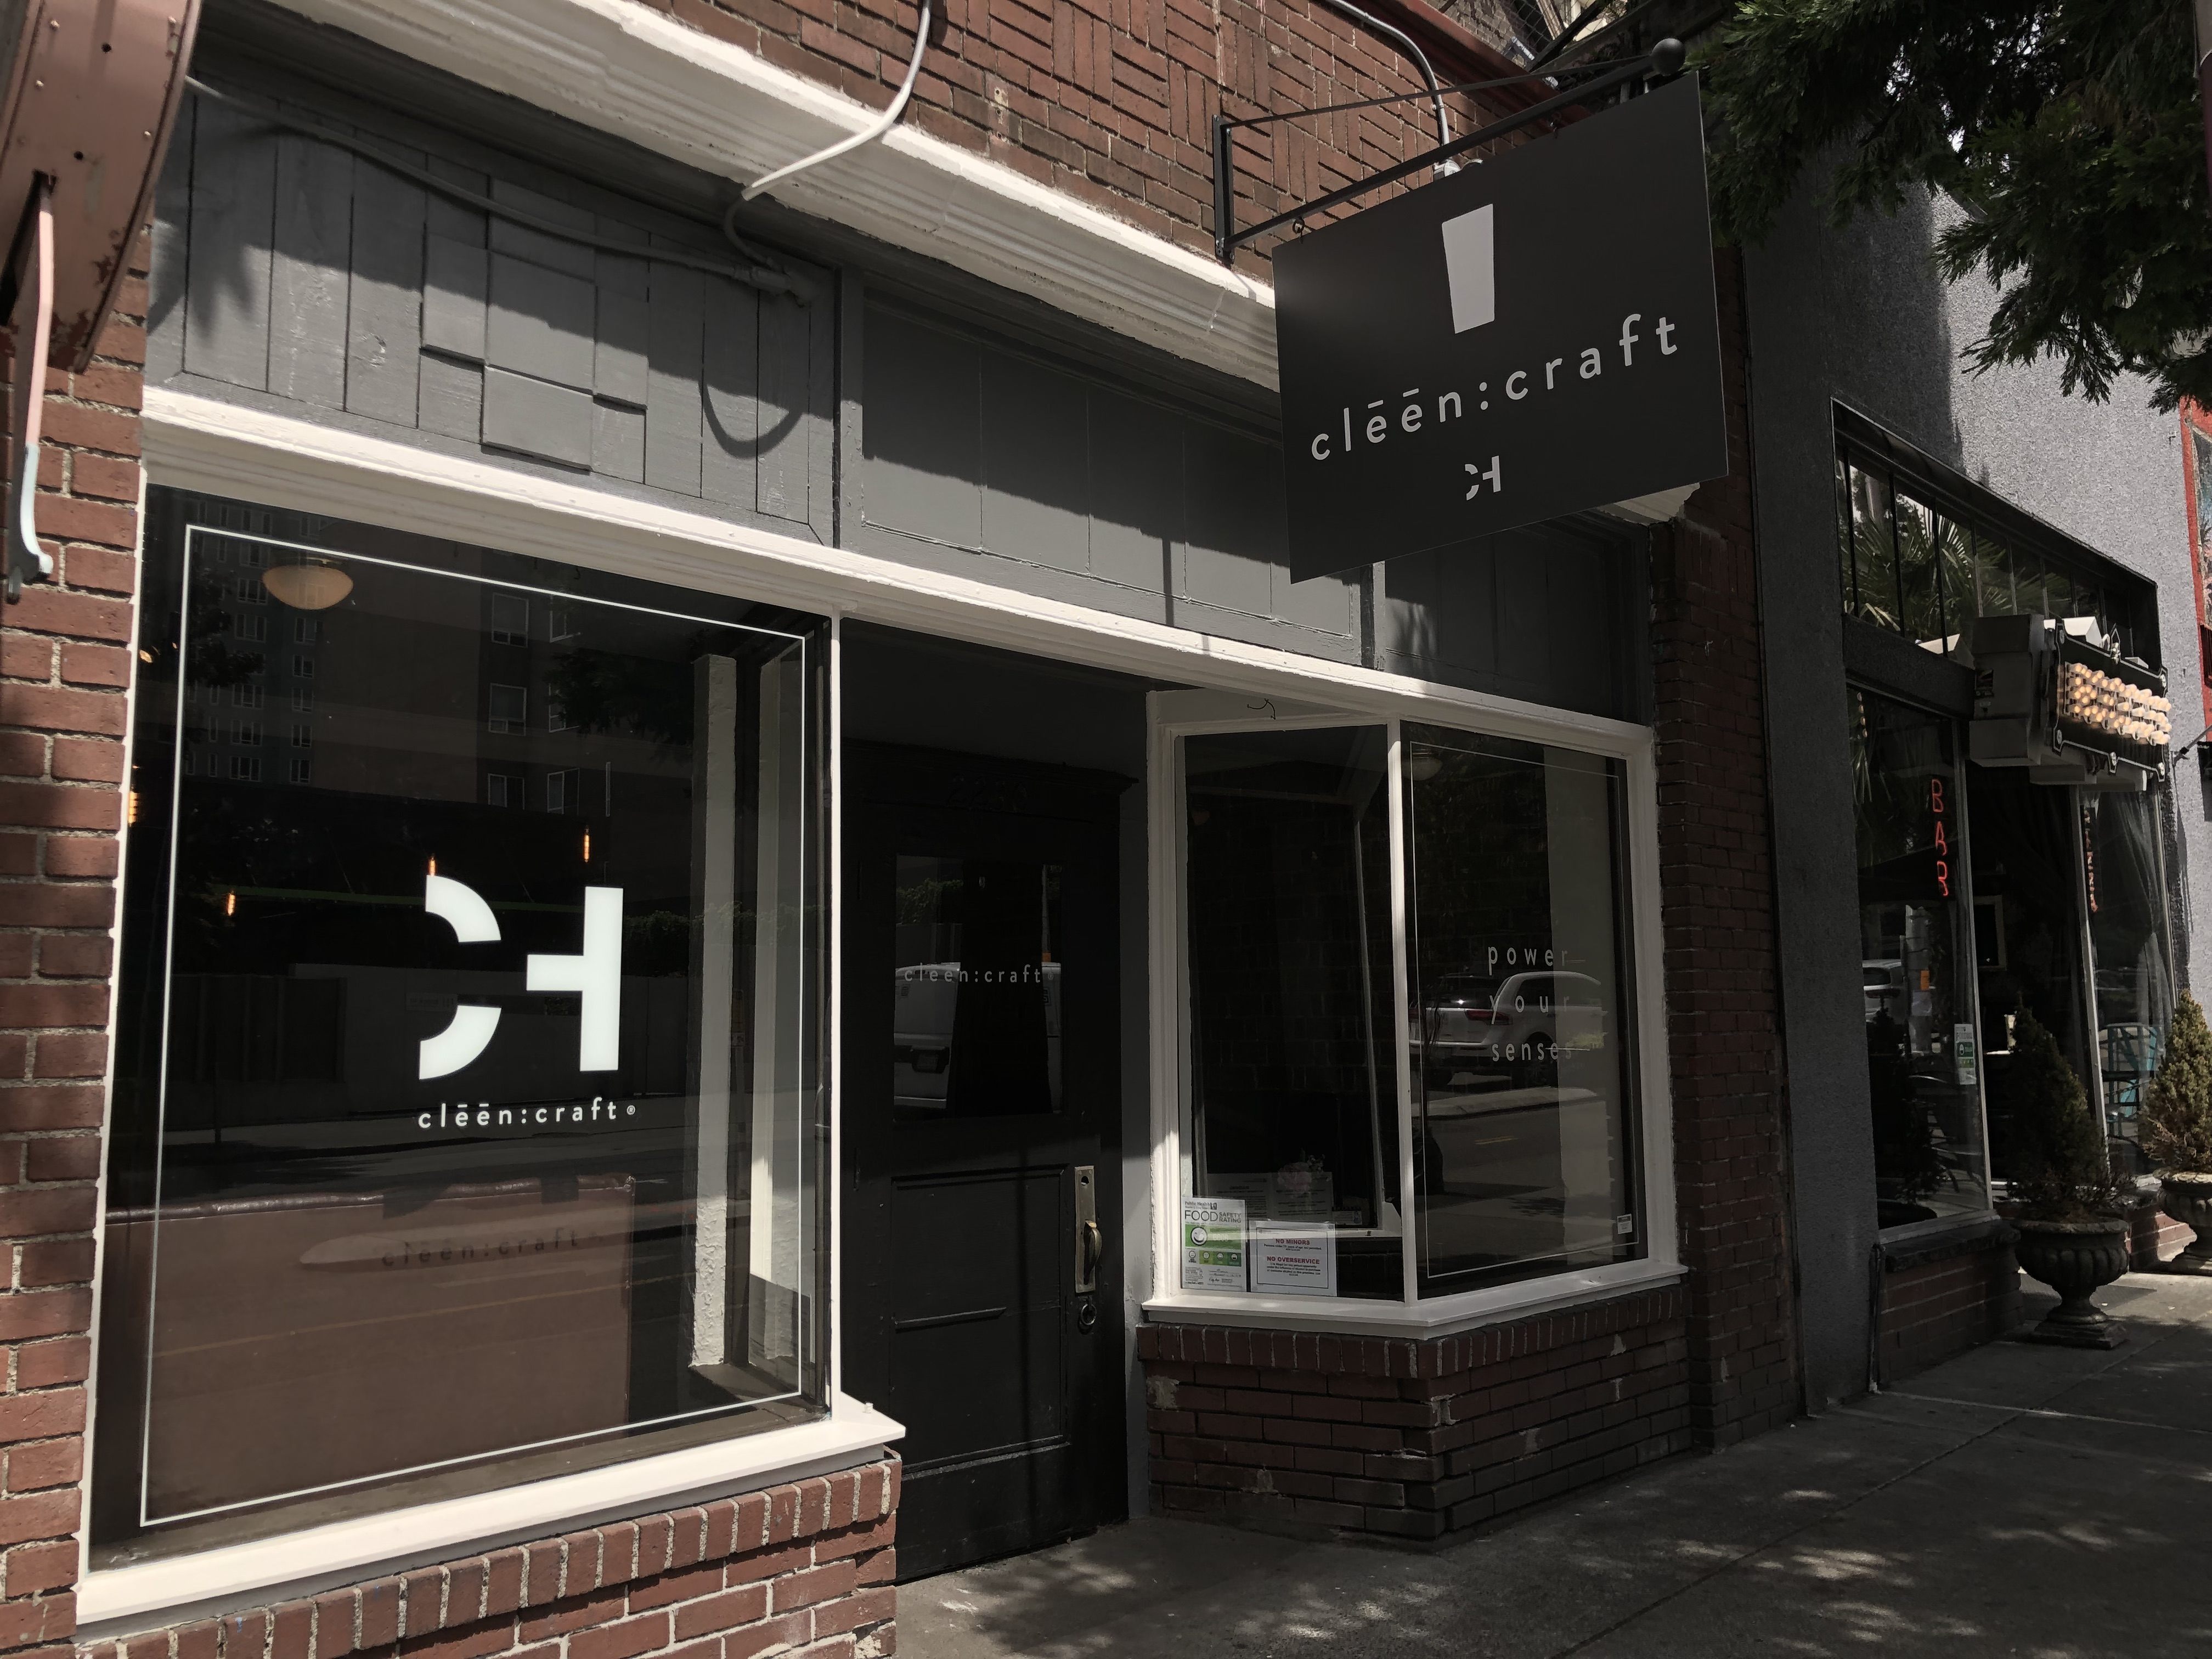 The exterior of the Cleen Craft tasting room in Belltown